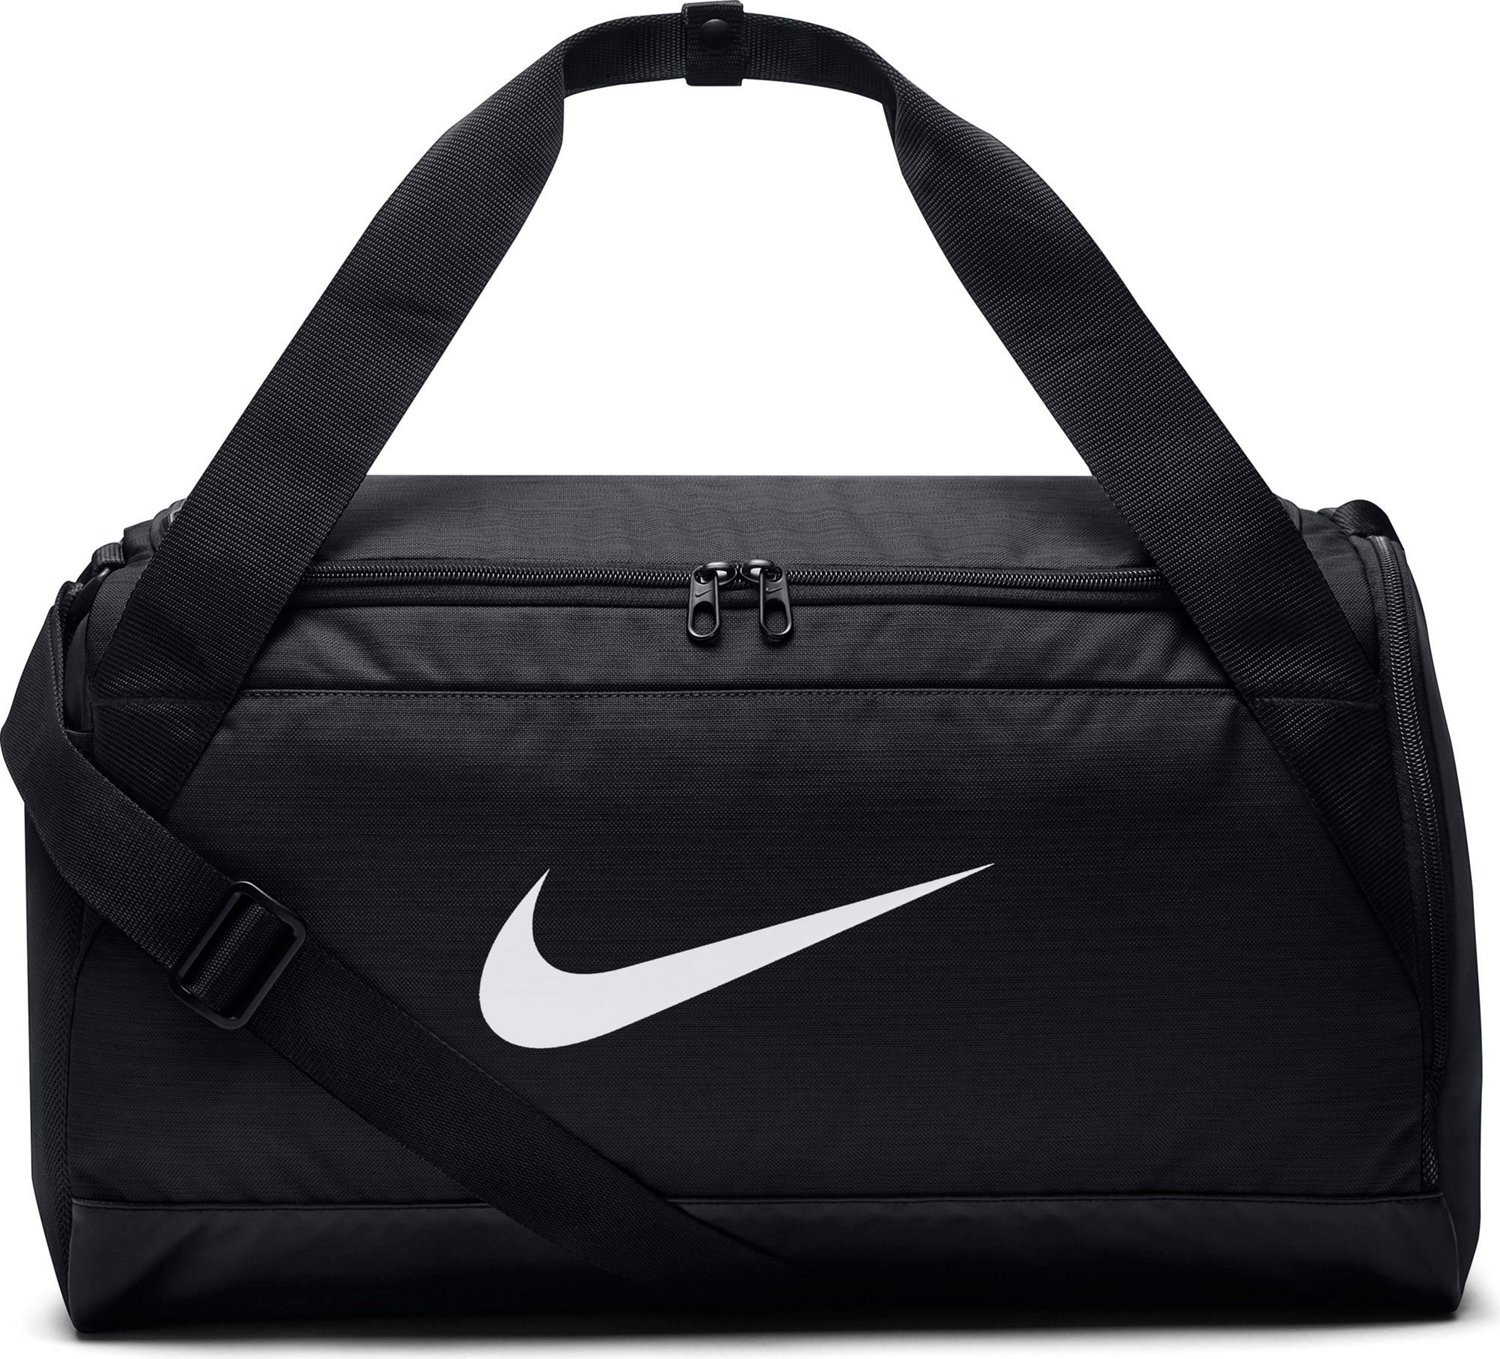 713bcec79894 Display product reviews for Nike Brasilia Small Duffel Bag